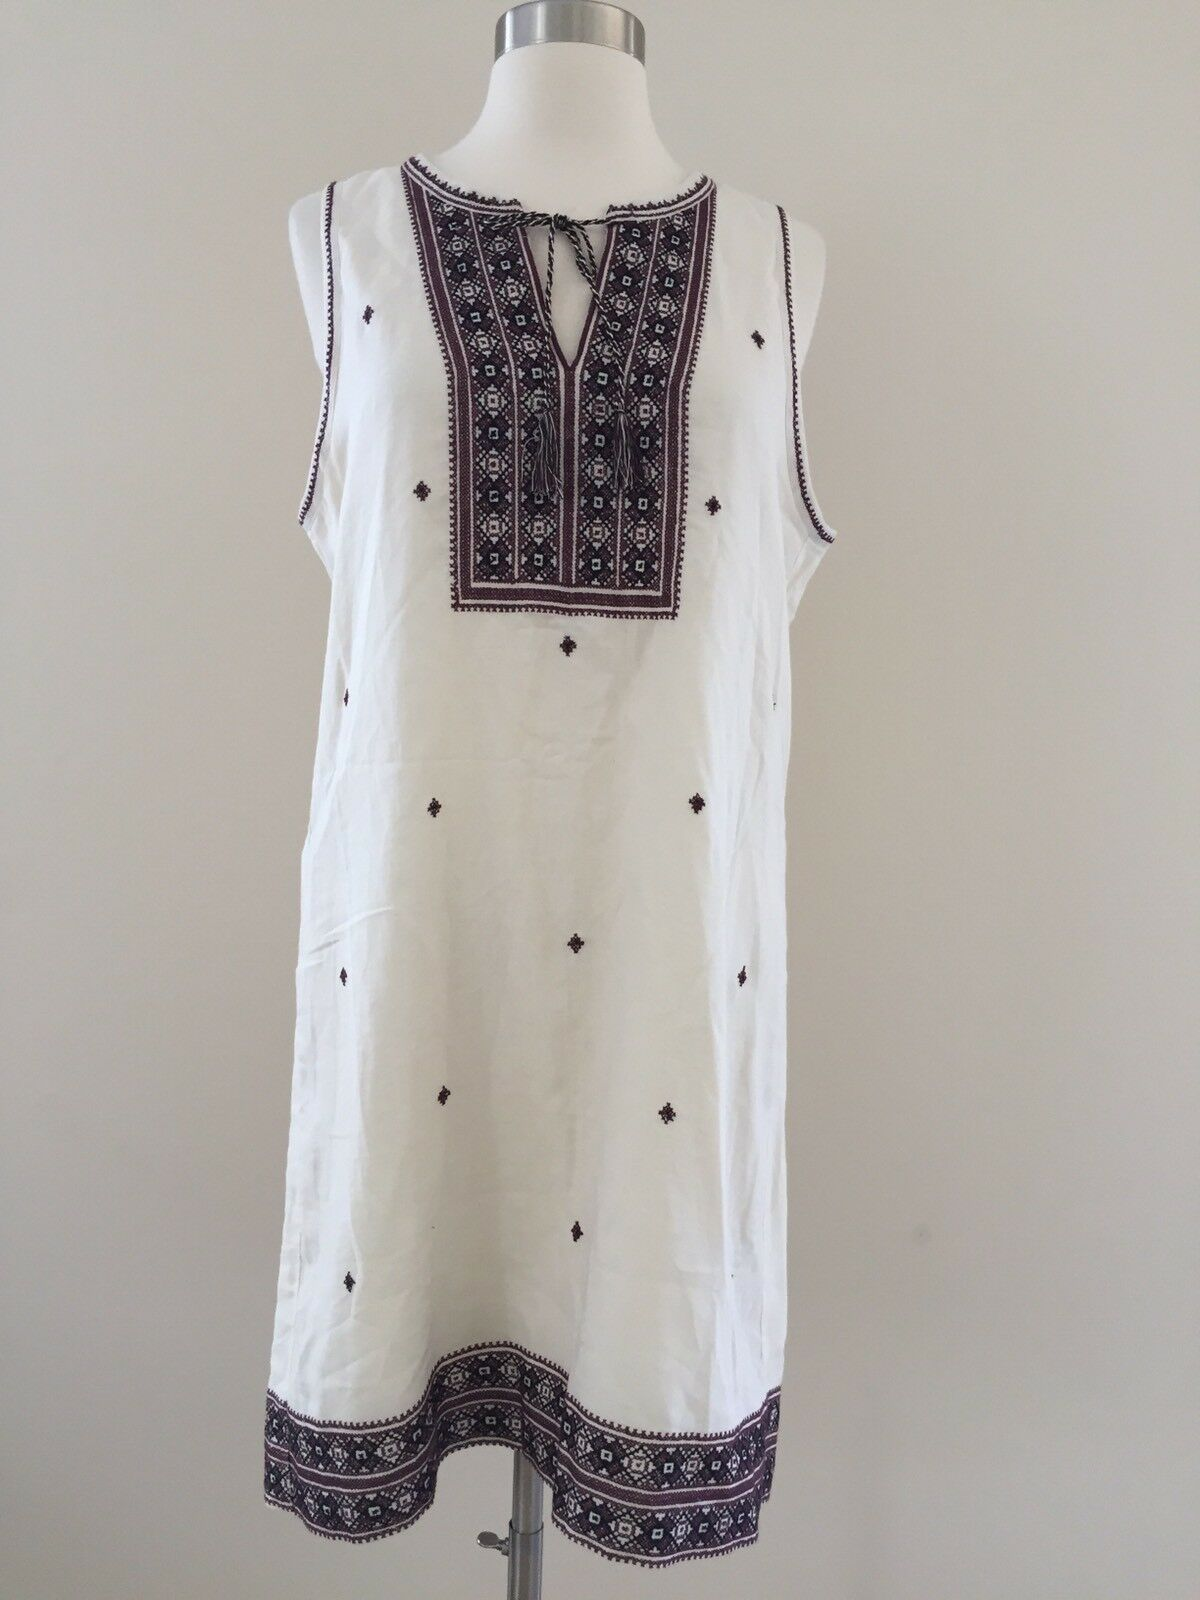 158 Madewell By J Crew Embroidered Suncoast Dress F2231 8 Bright Ivory Sold Out